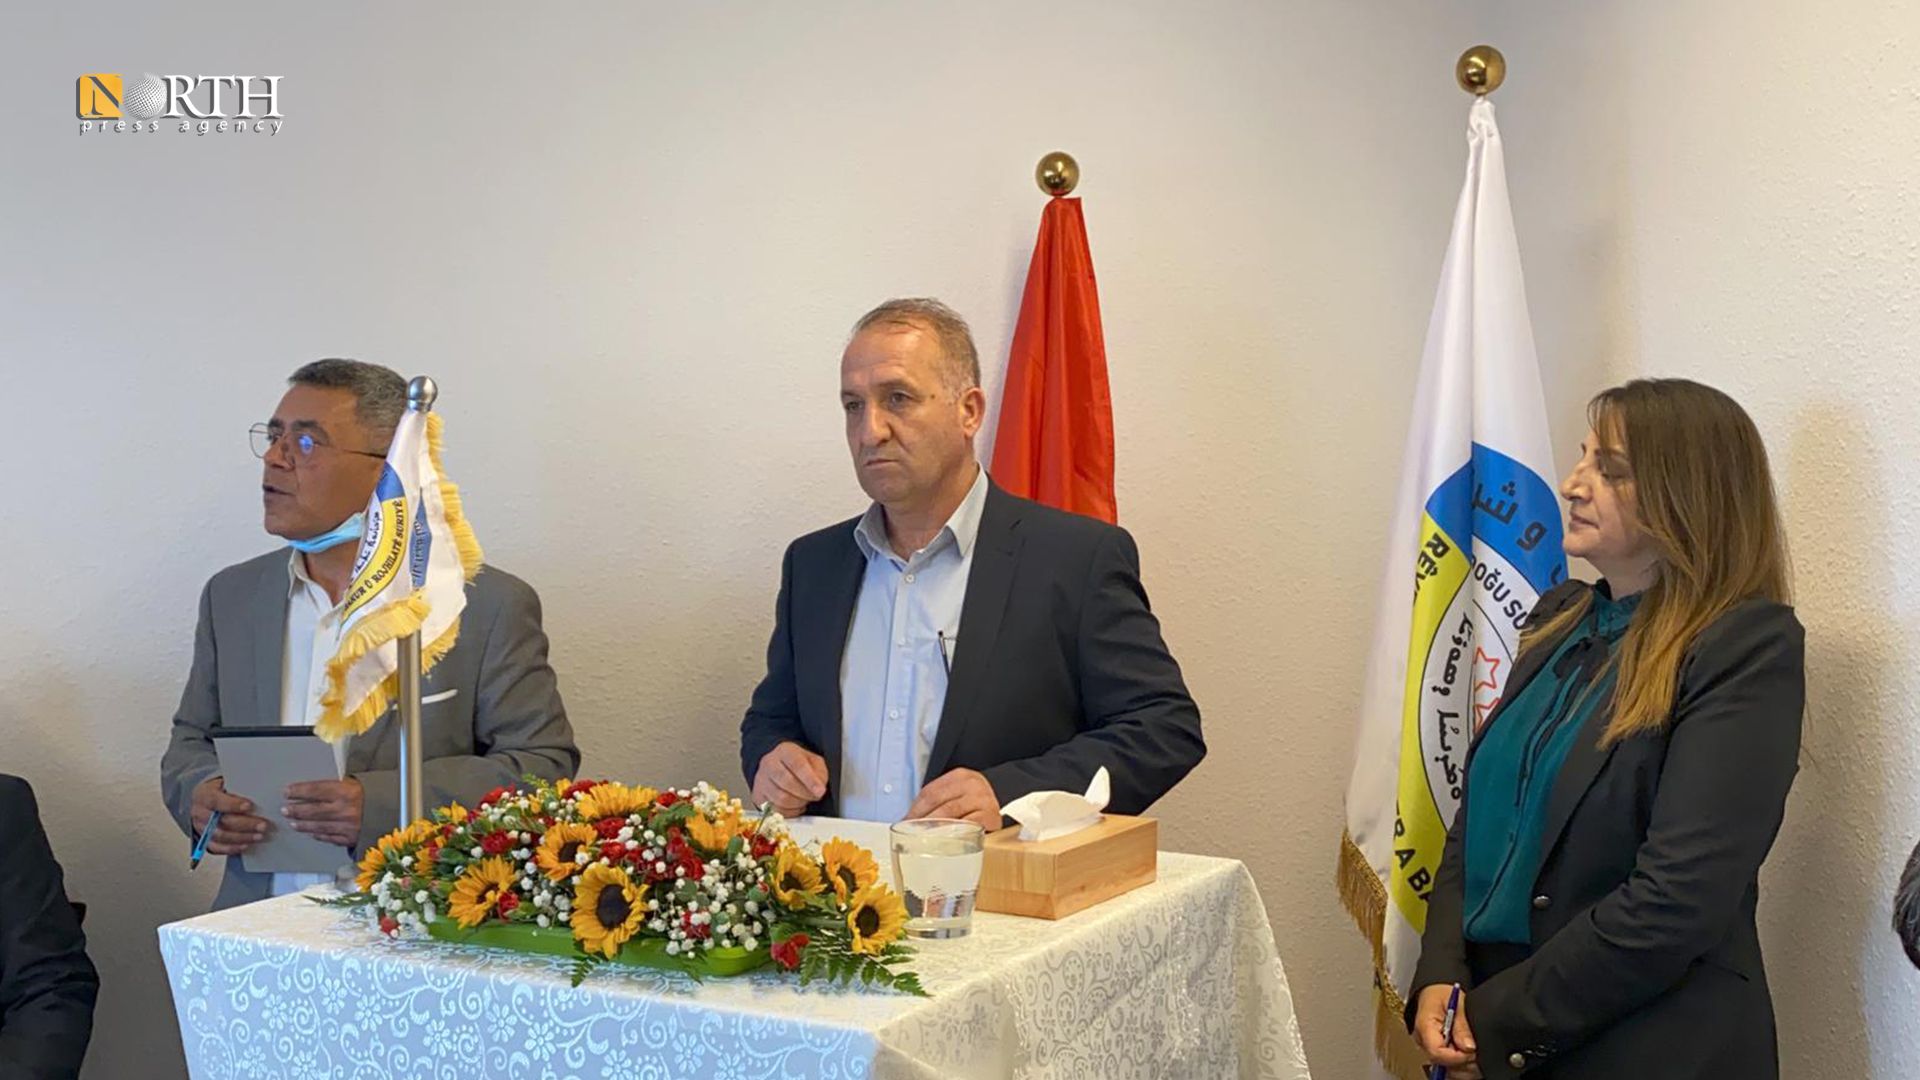 Opening the office of the Autonomous Administration in Switzerland – North Press